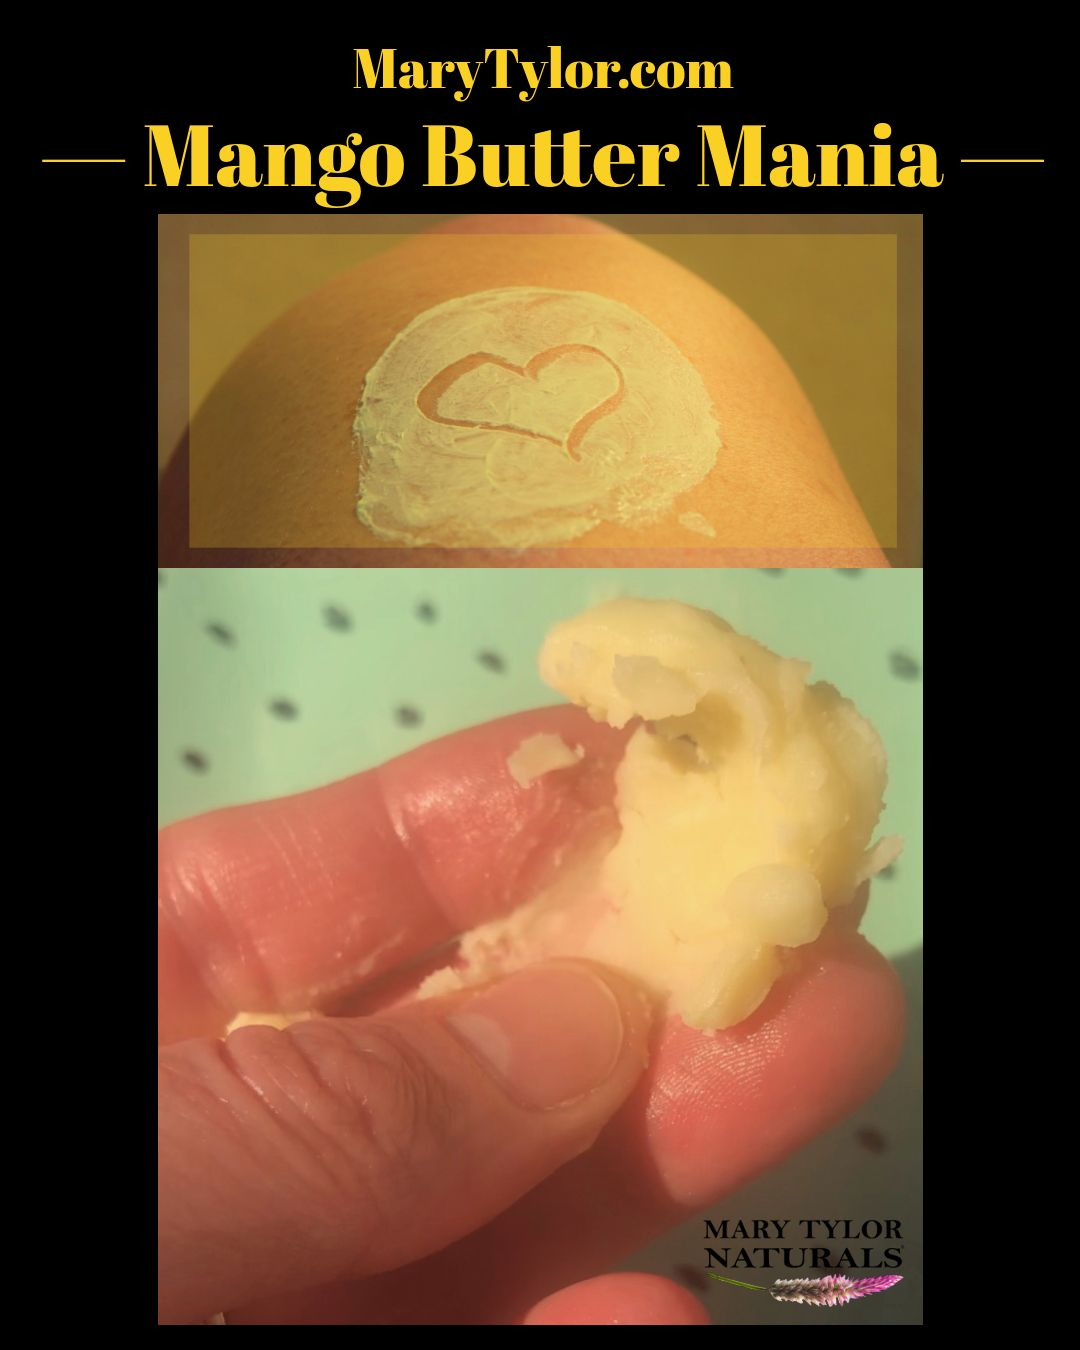 Mango Mania!  Mango Butter is all over... your skin